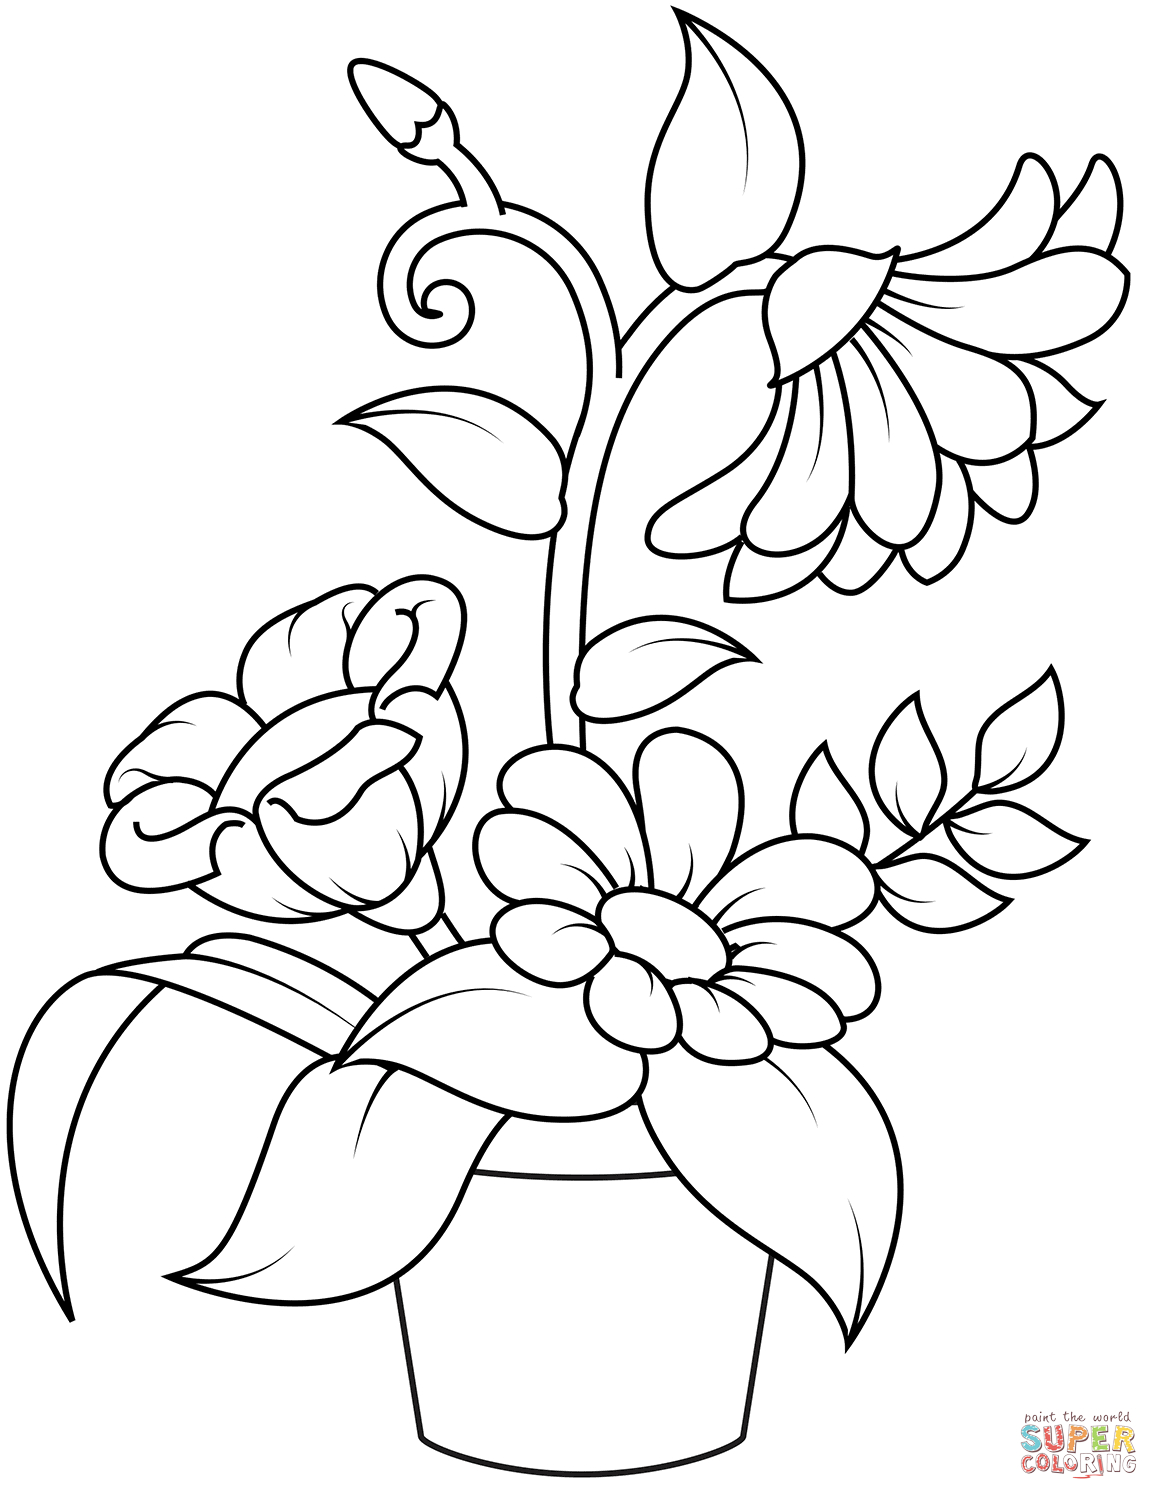 image relating to Flower Pot Printable identified as Flower Pot Coloring Website page Flowerpot Coloring Web site Absolutely free